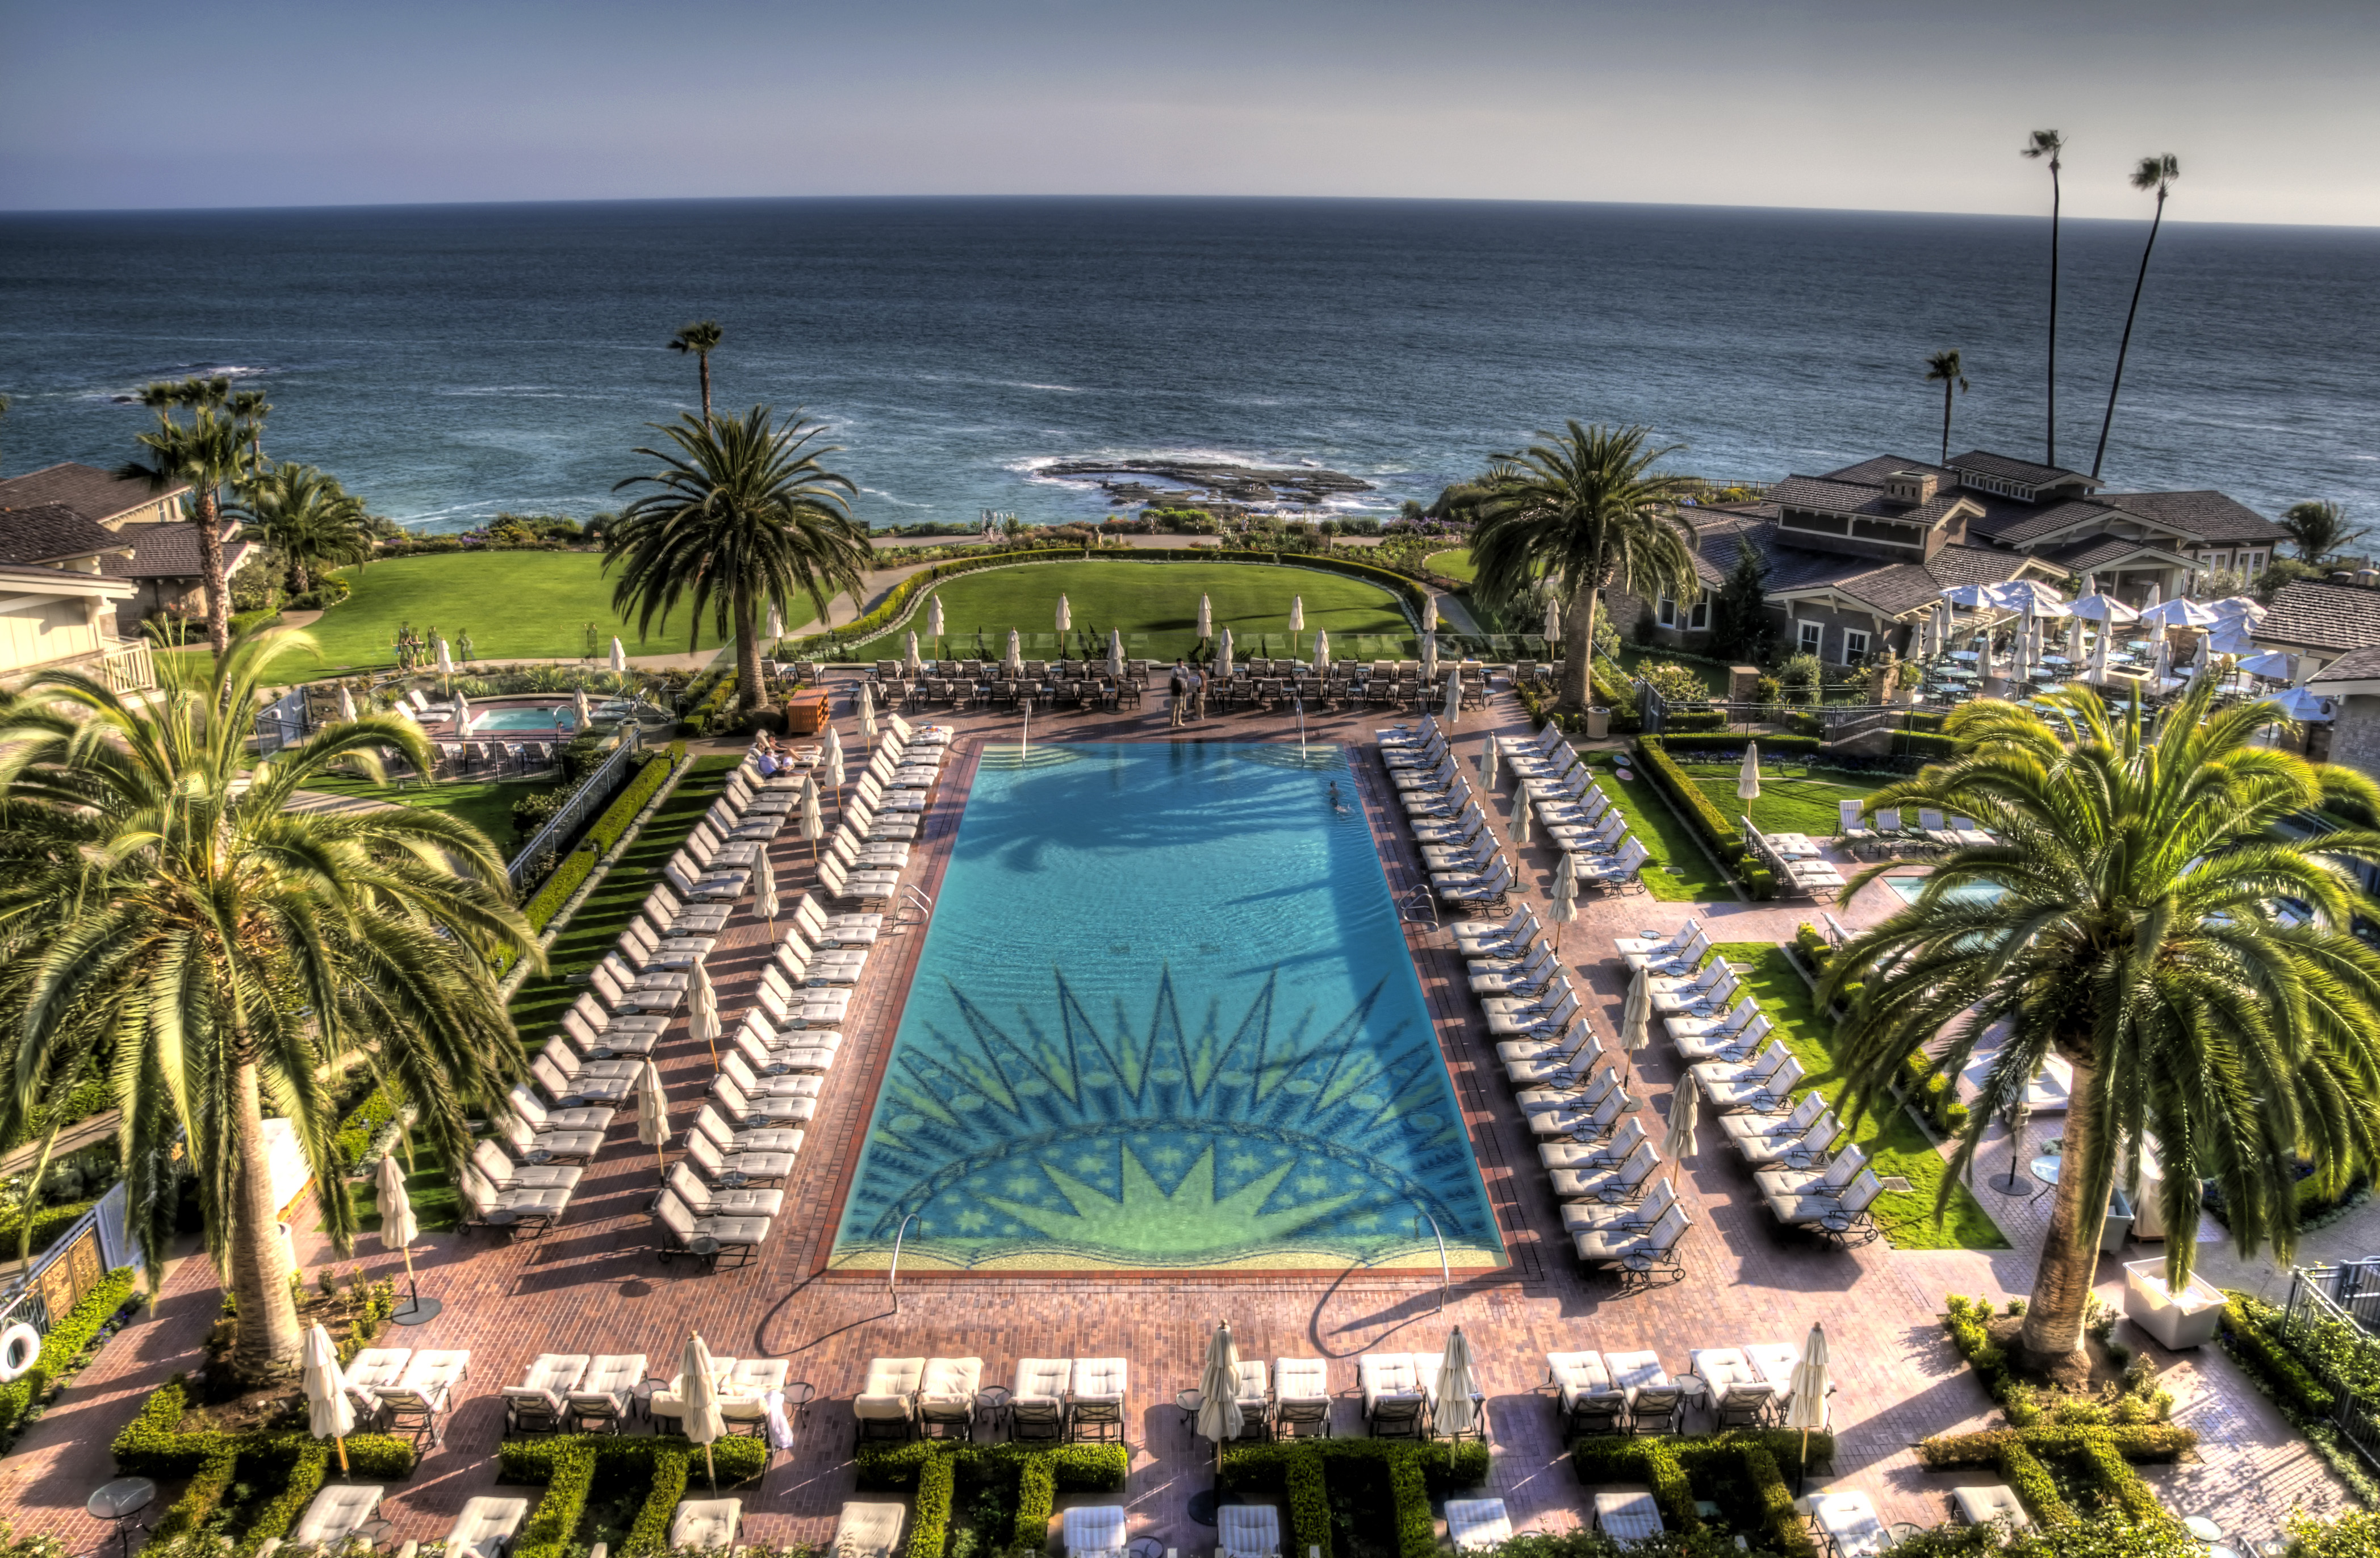 Hotels Near Me With Beach And Great Pool